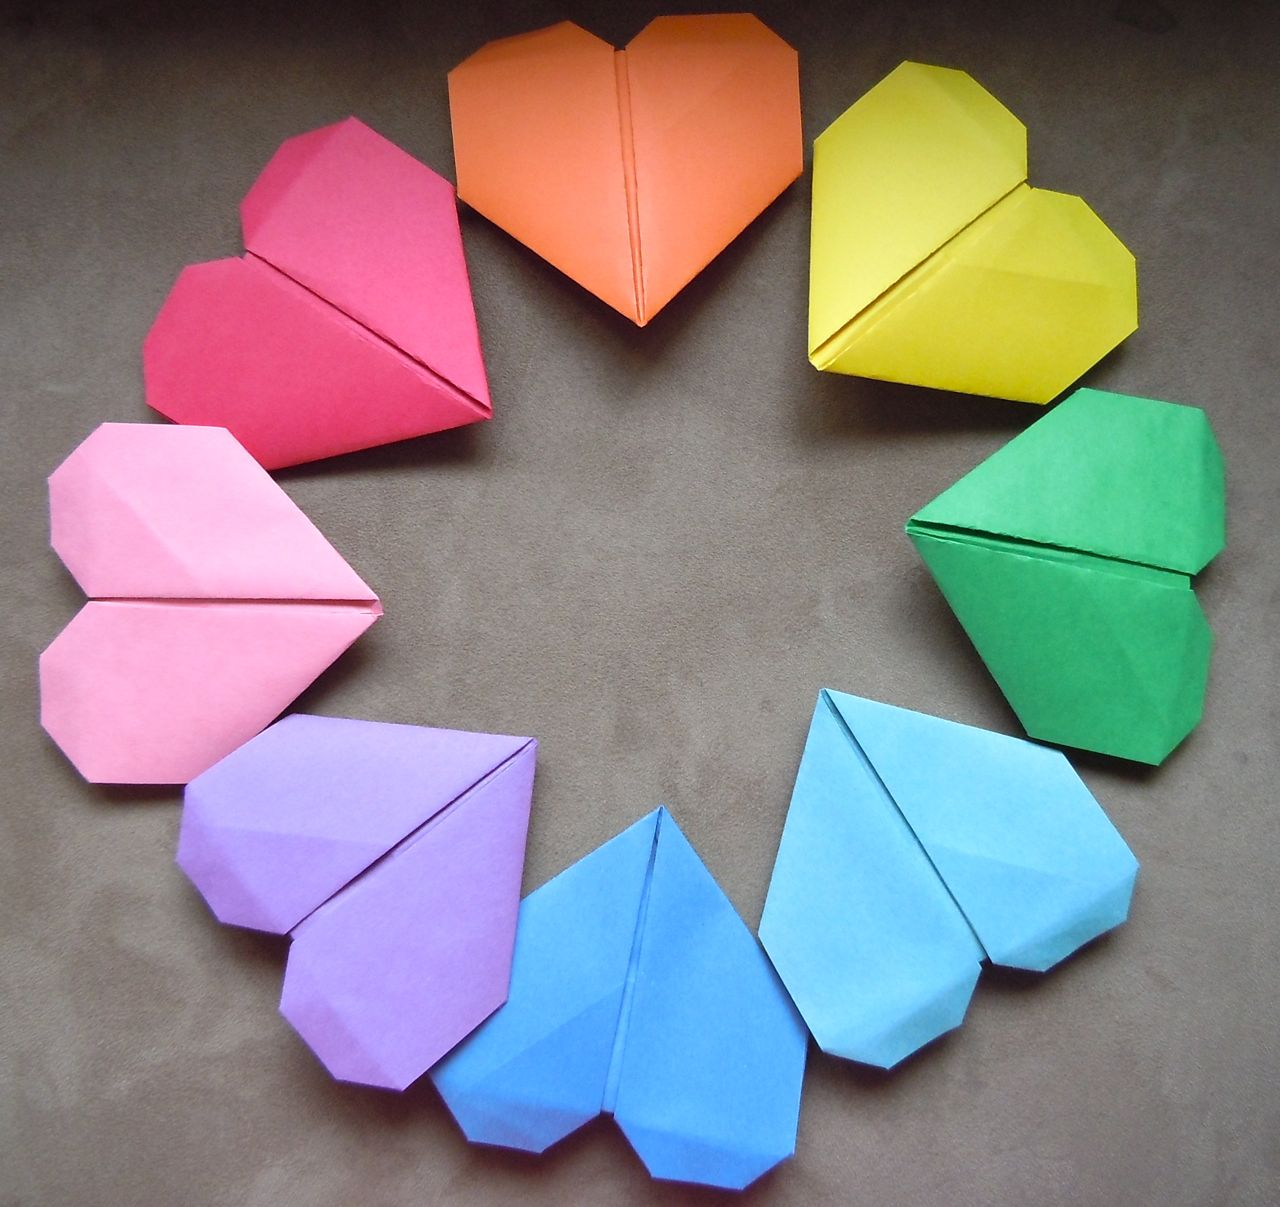 How to Make an Origami Heart: 15 Steps (with Pictures) - wikiHow | 1207x1280